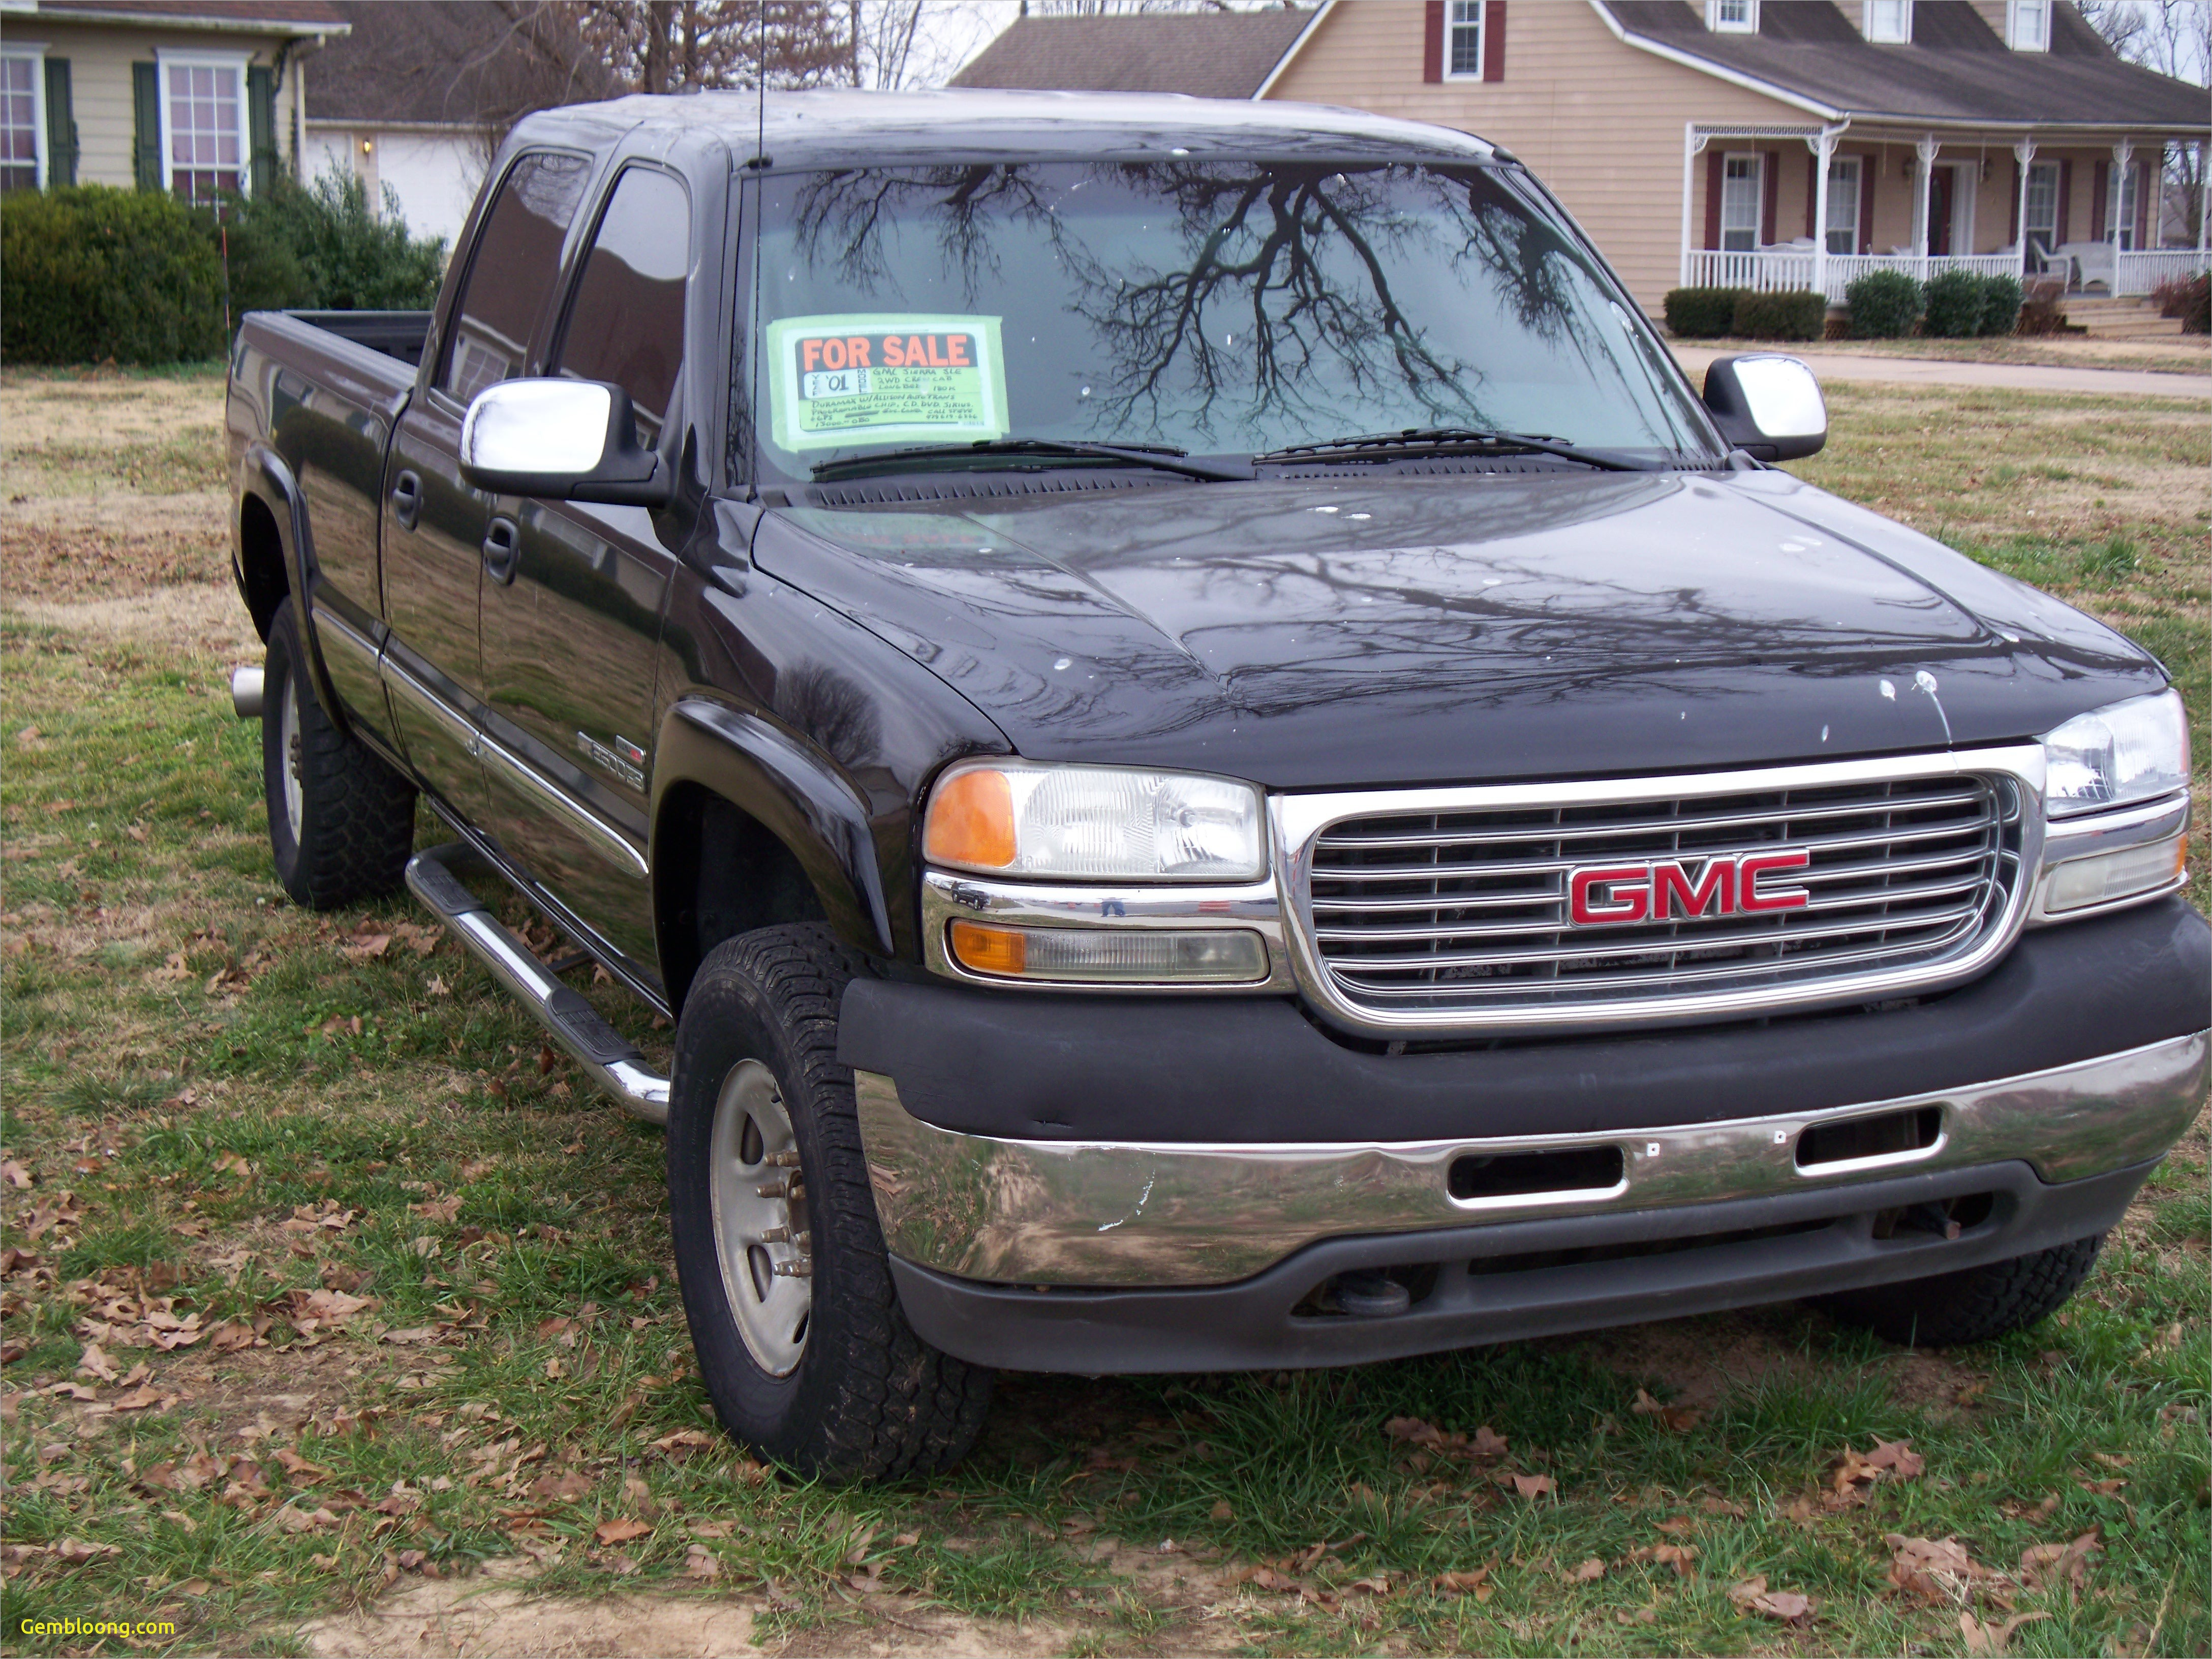 Used Cars or Trucks for Sale Near Me Best Of Craigslist orlando Florida Used Cars and Trucks by Owner Open